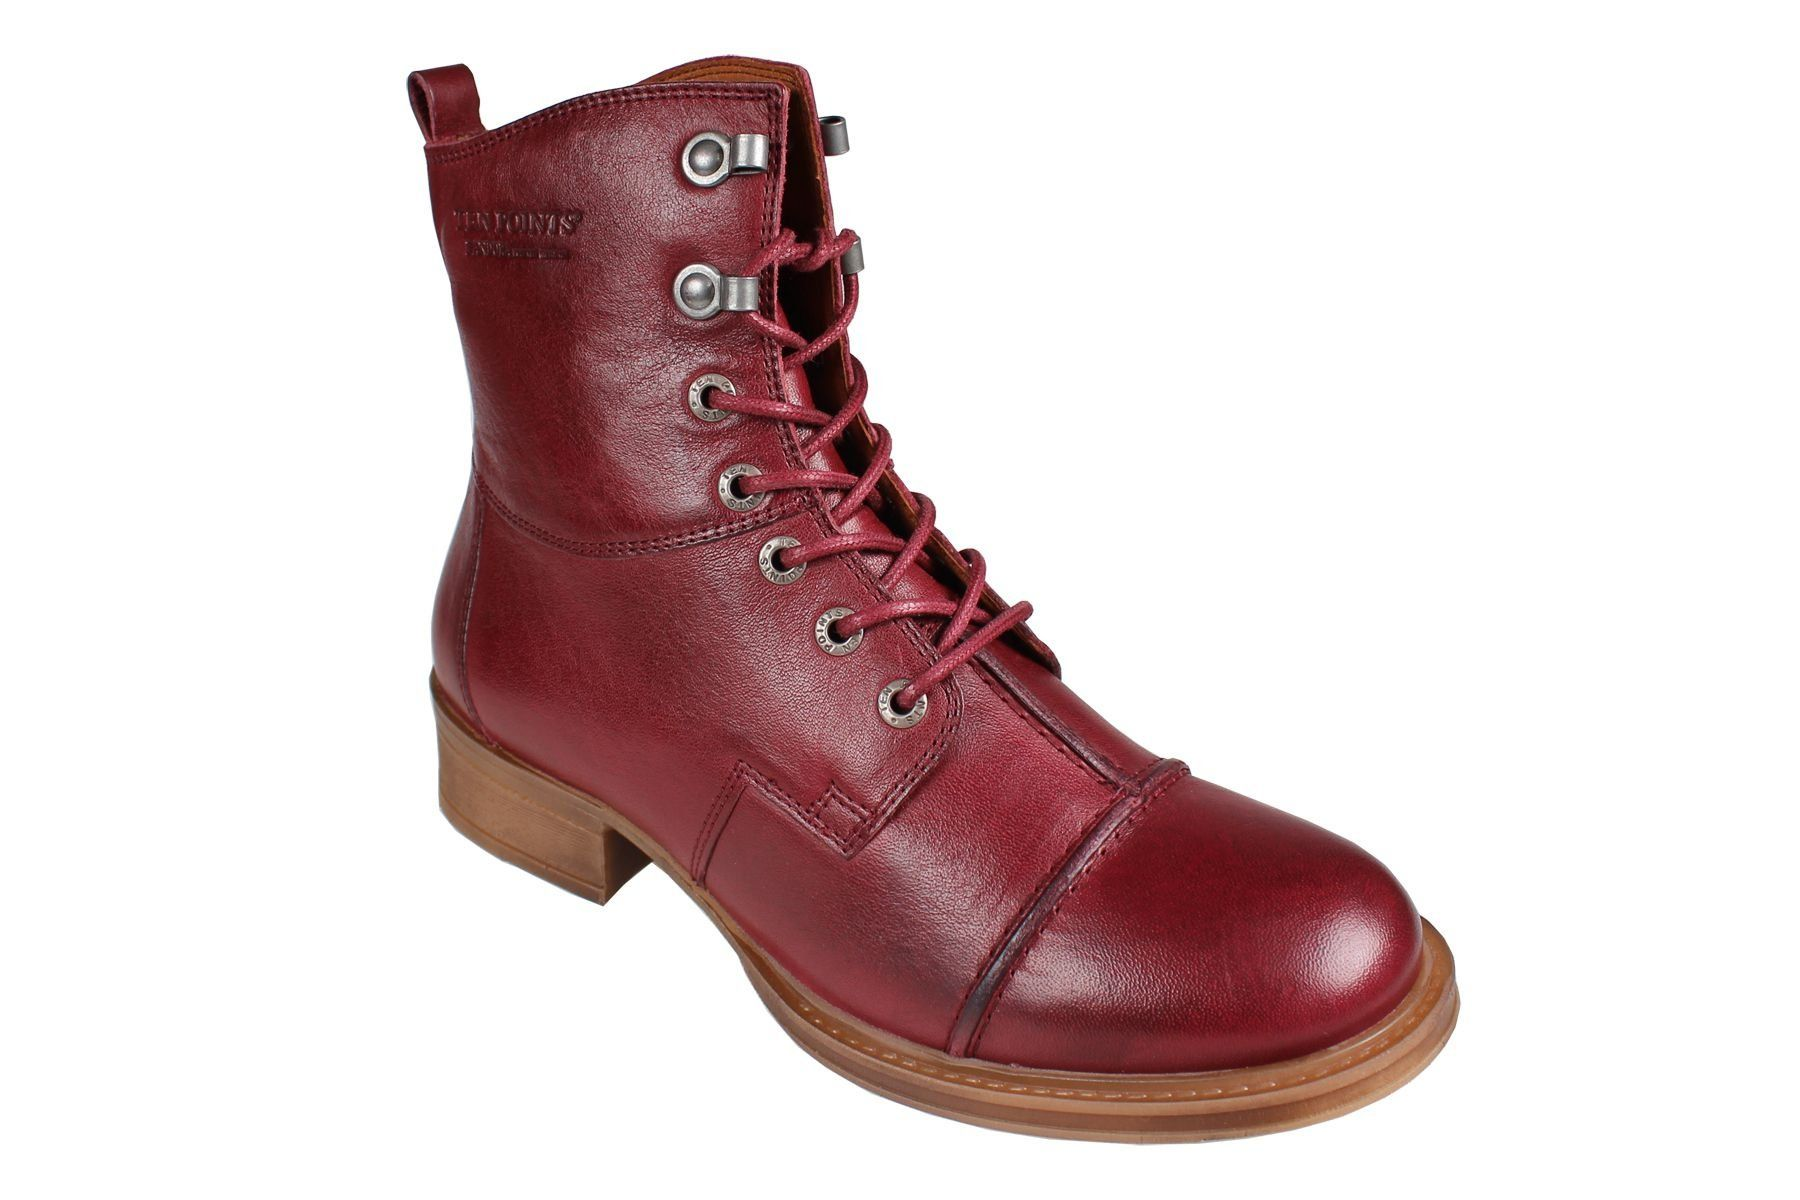 Pandora Lace-Up Boot in Bordeaux